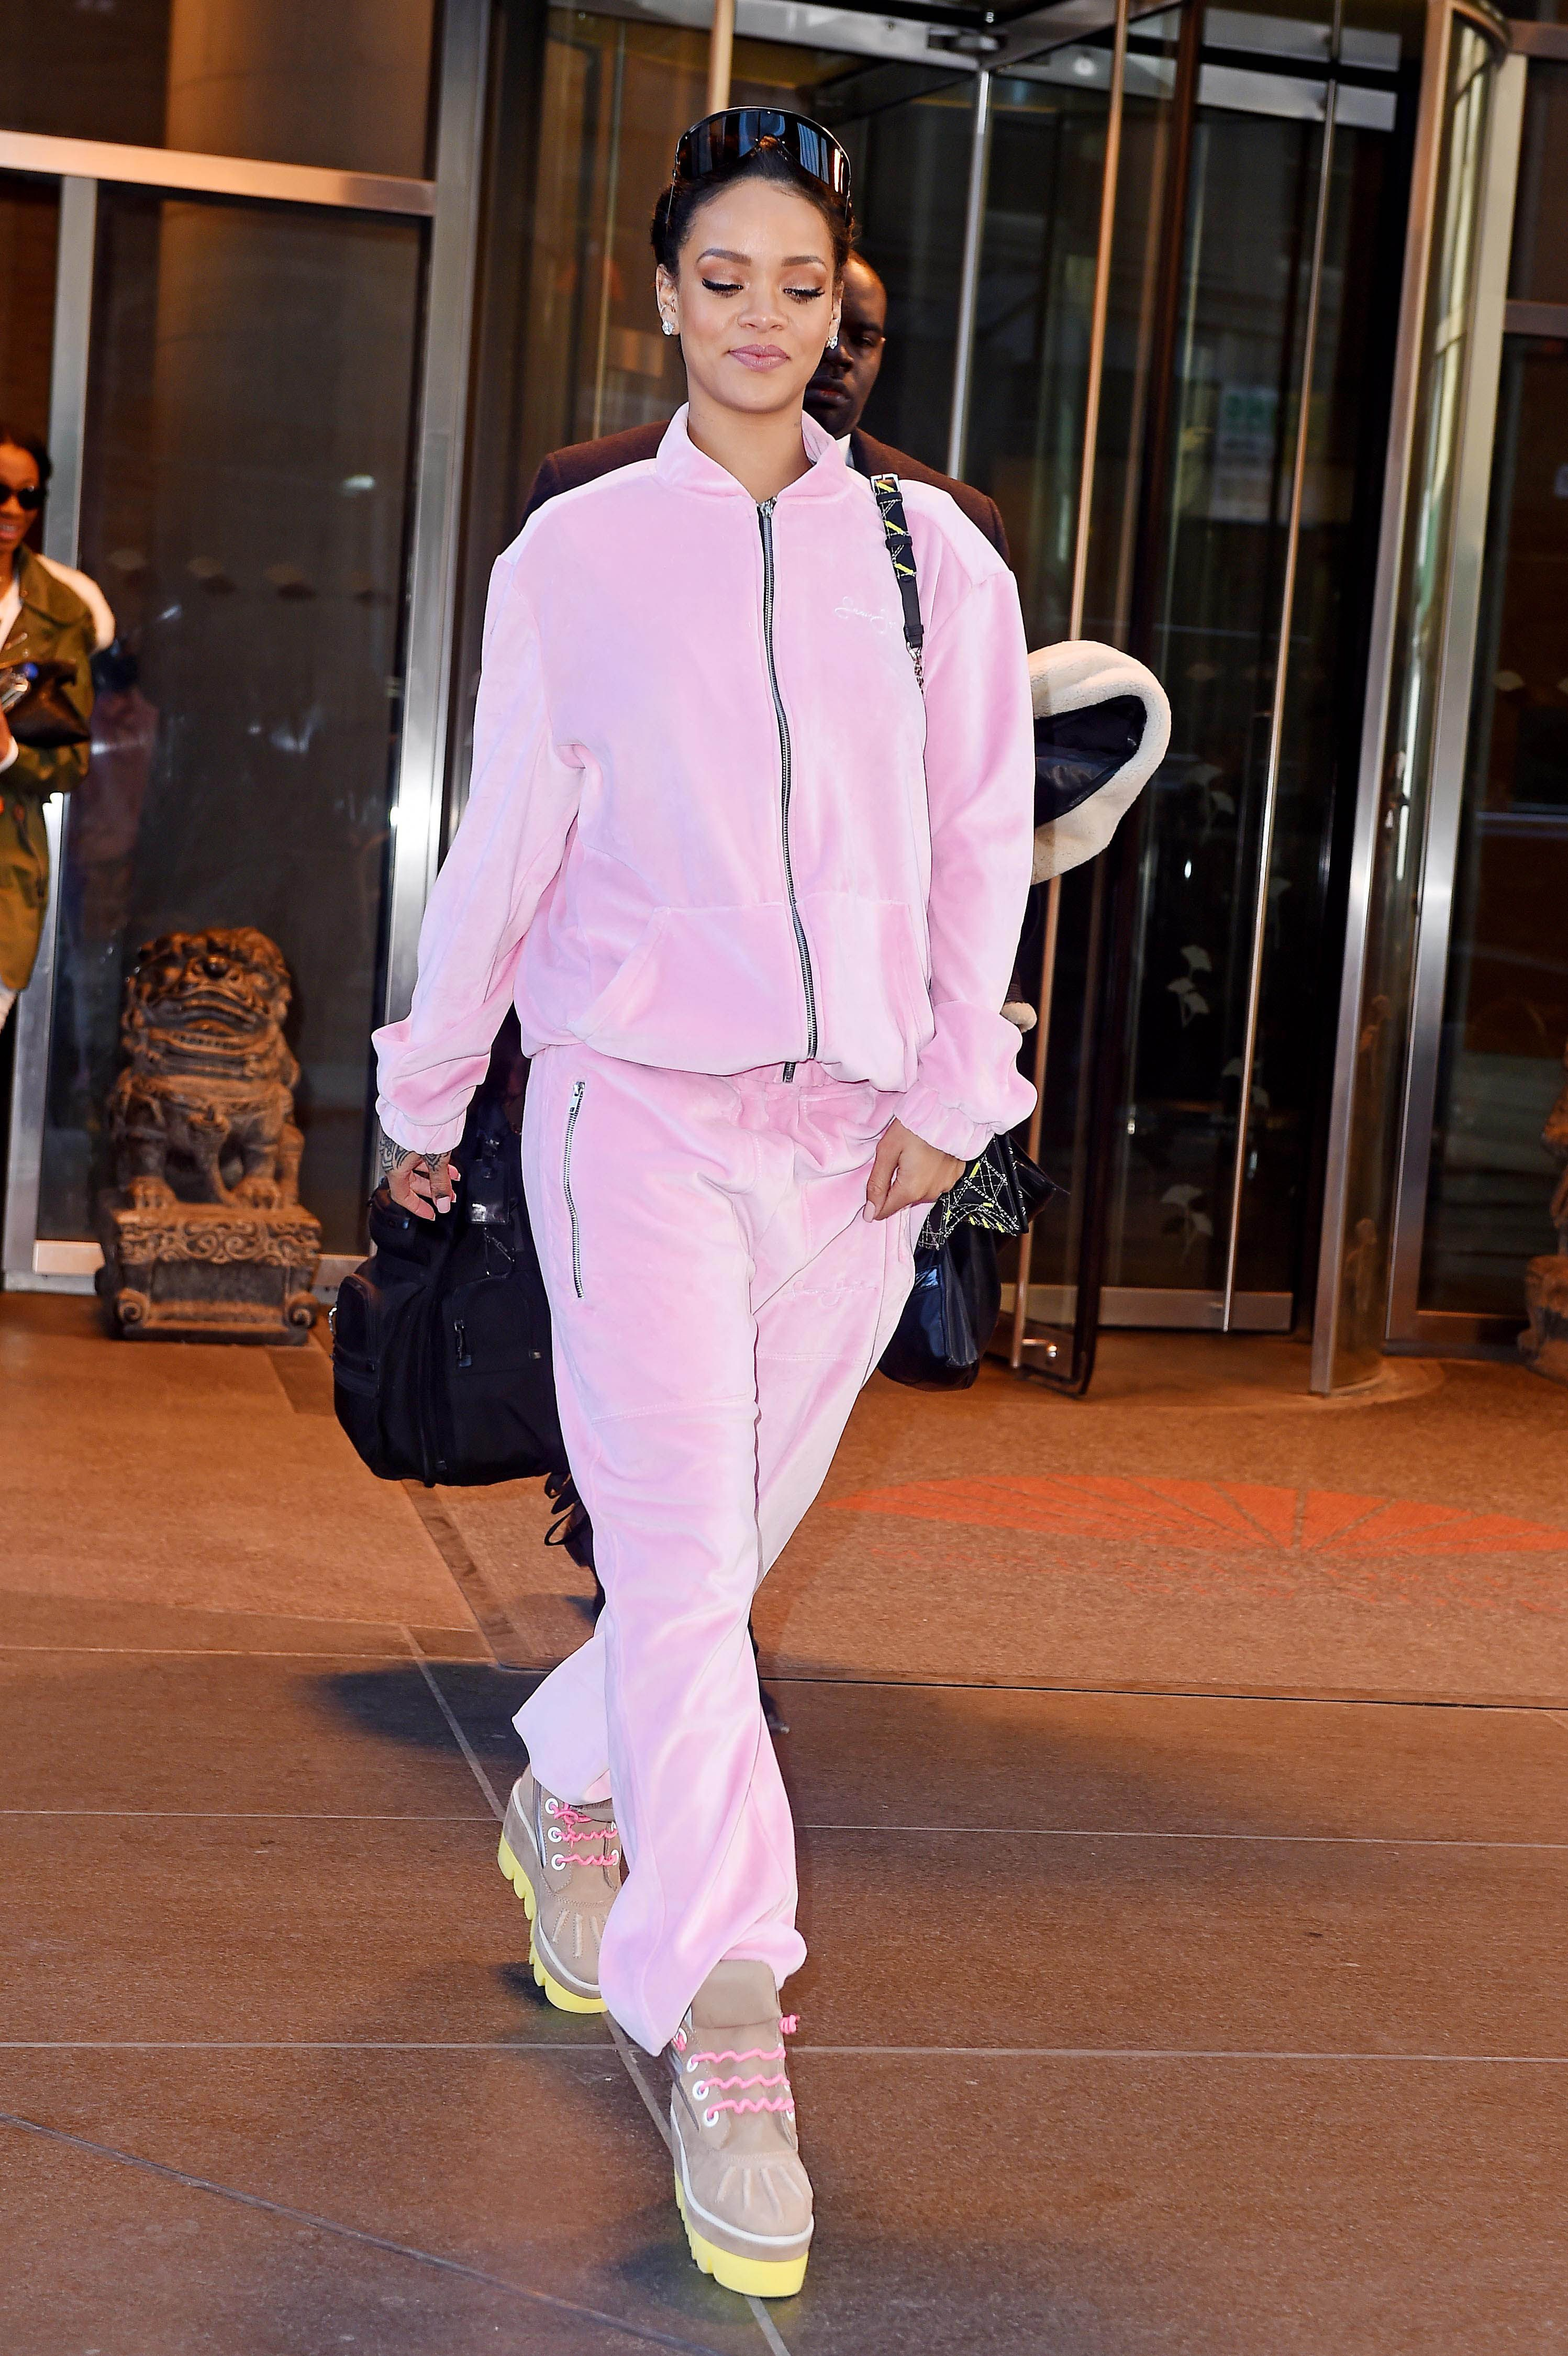 62a72b5cdb6 Continuing the pink theme - if you thought velour tracksuits were a thing  of the past, think again. - Cosmopolitan.co.uk. Photos of Rihanna's ...